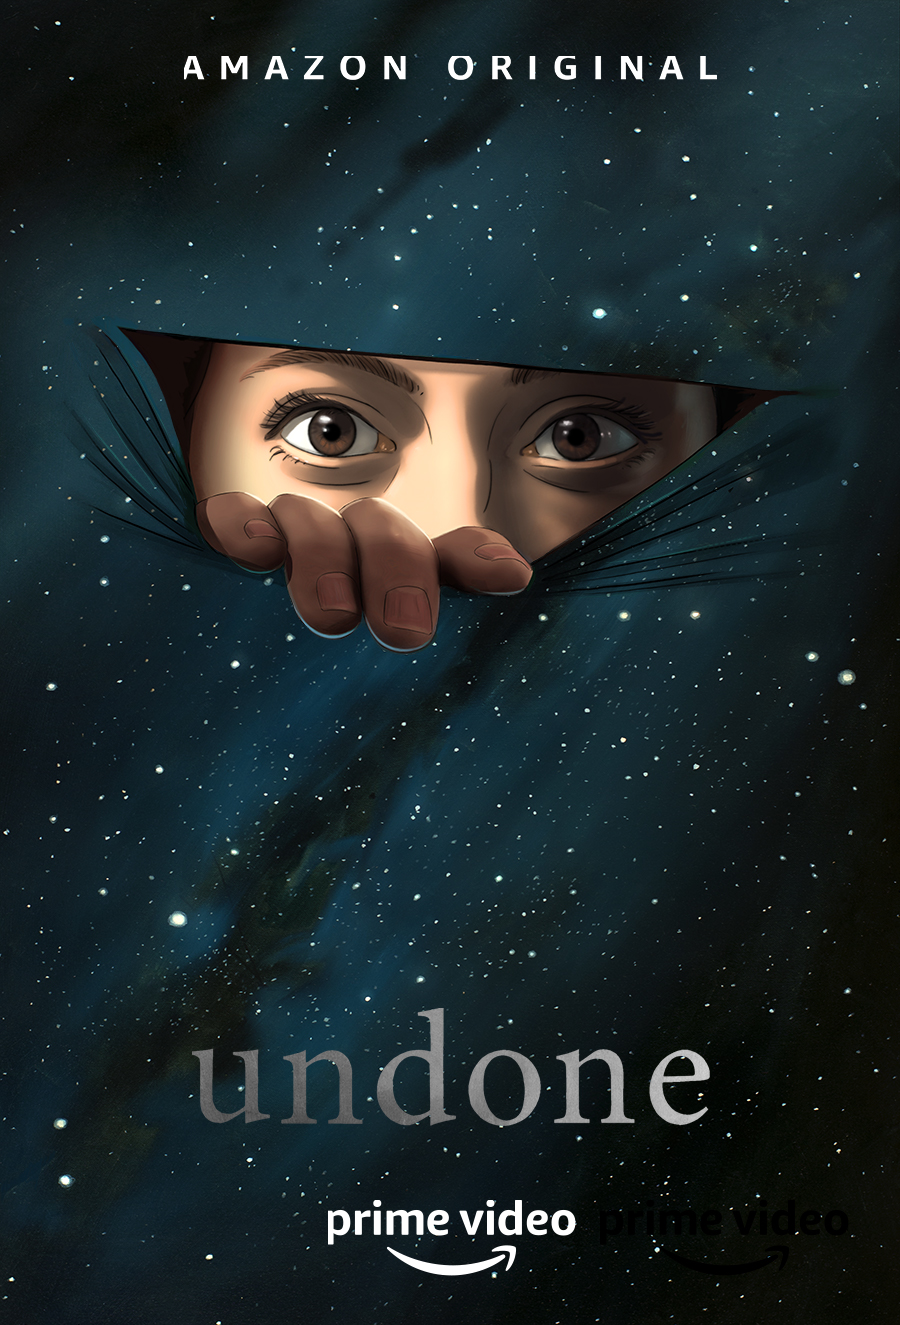 Undone Key Art - Amazon